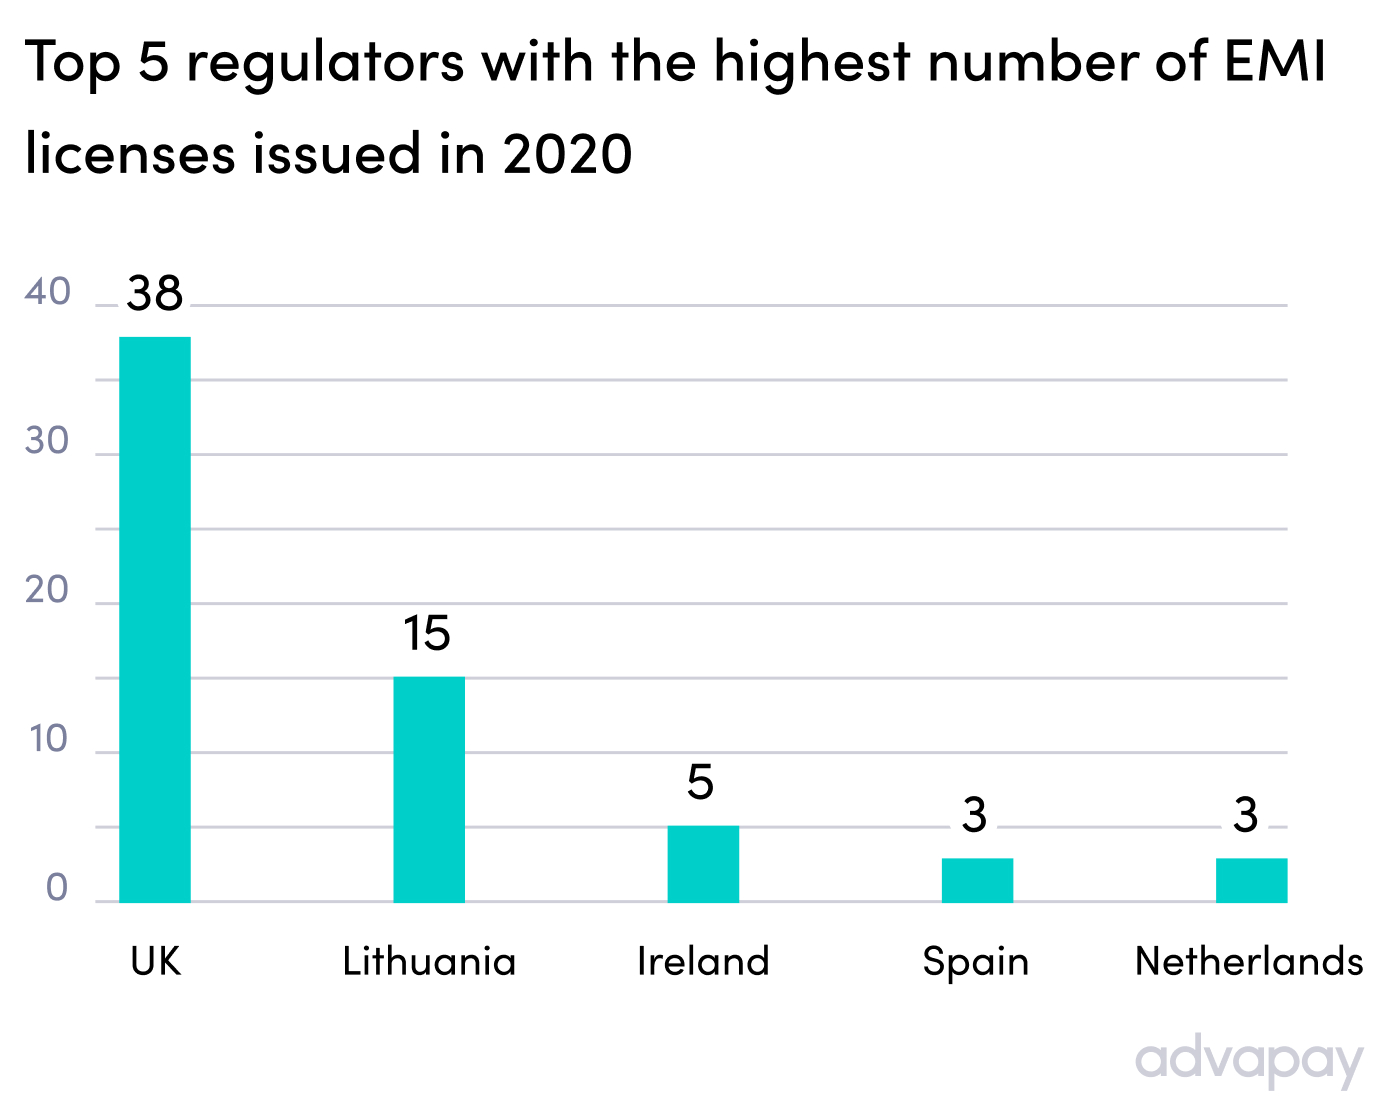 Top 5 regulators with the highest number of EMI licenses issued in 2020